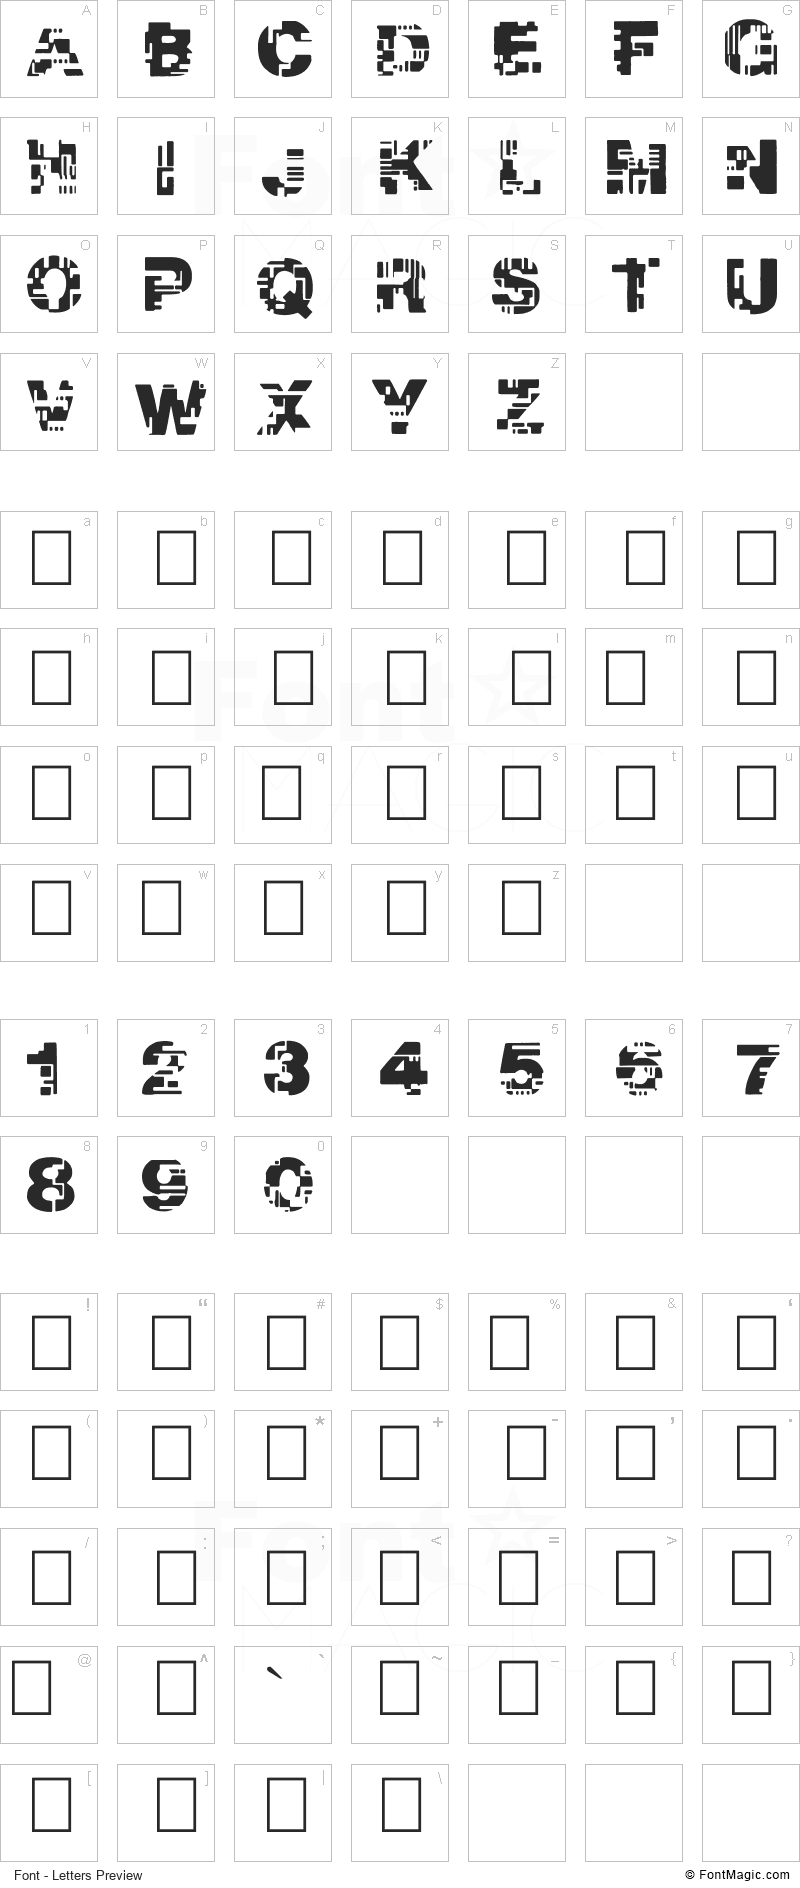 Real Tek Font - All Latters Preview Chart